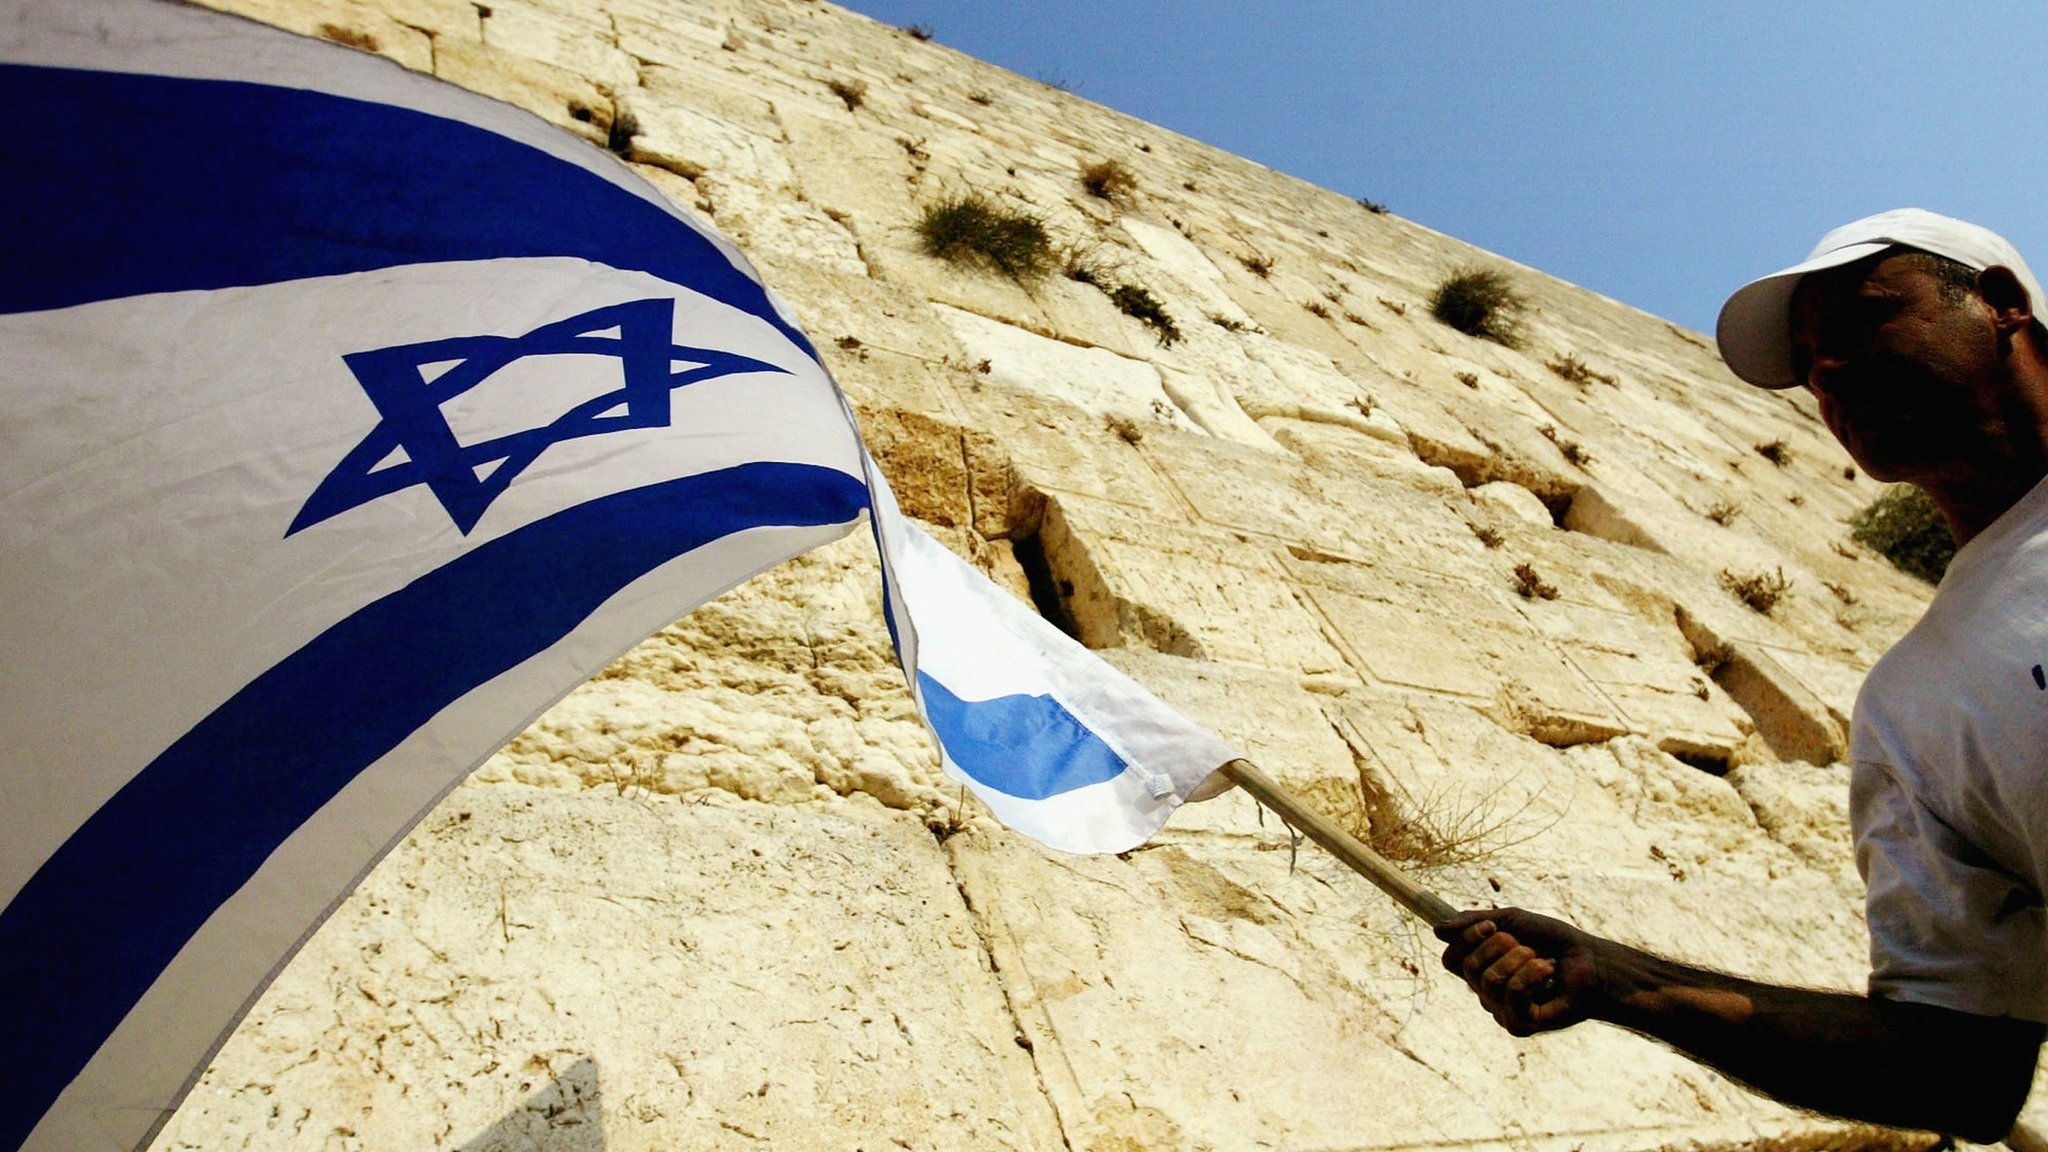 Israel and Arabic: Where else do language and politics collide? | BBC